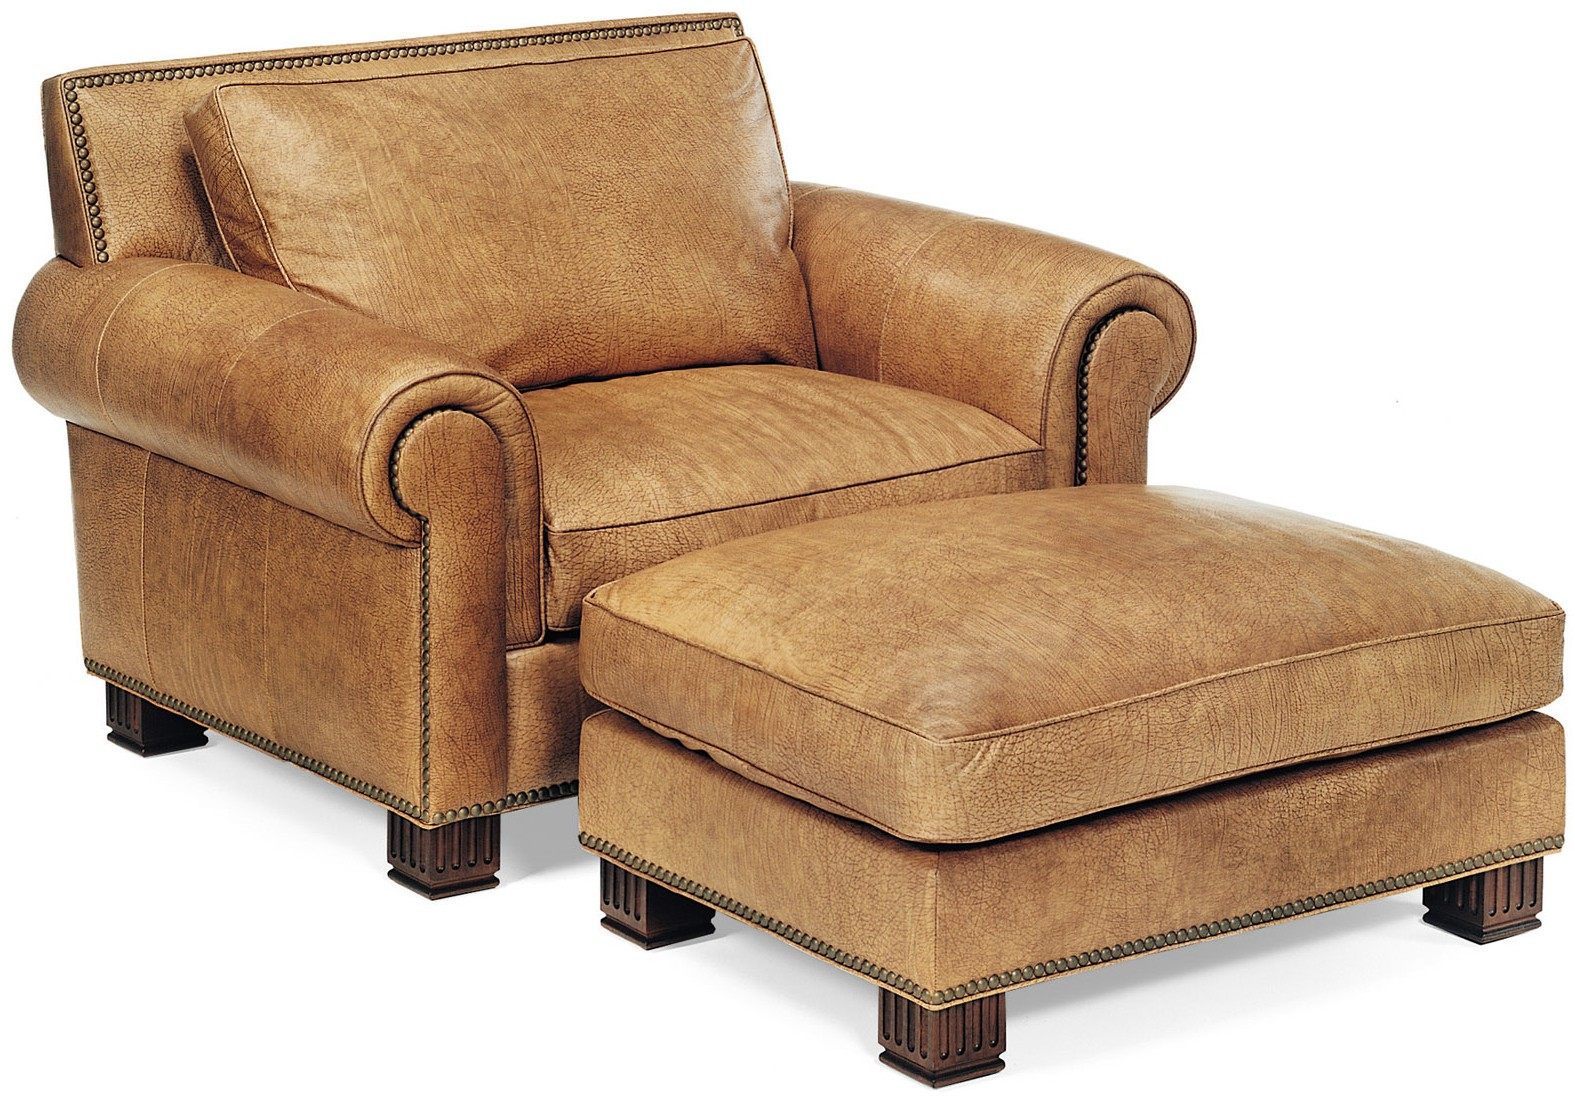 Leather armchair and matching ottoman - Bernadette Livingston